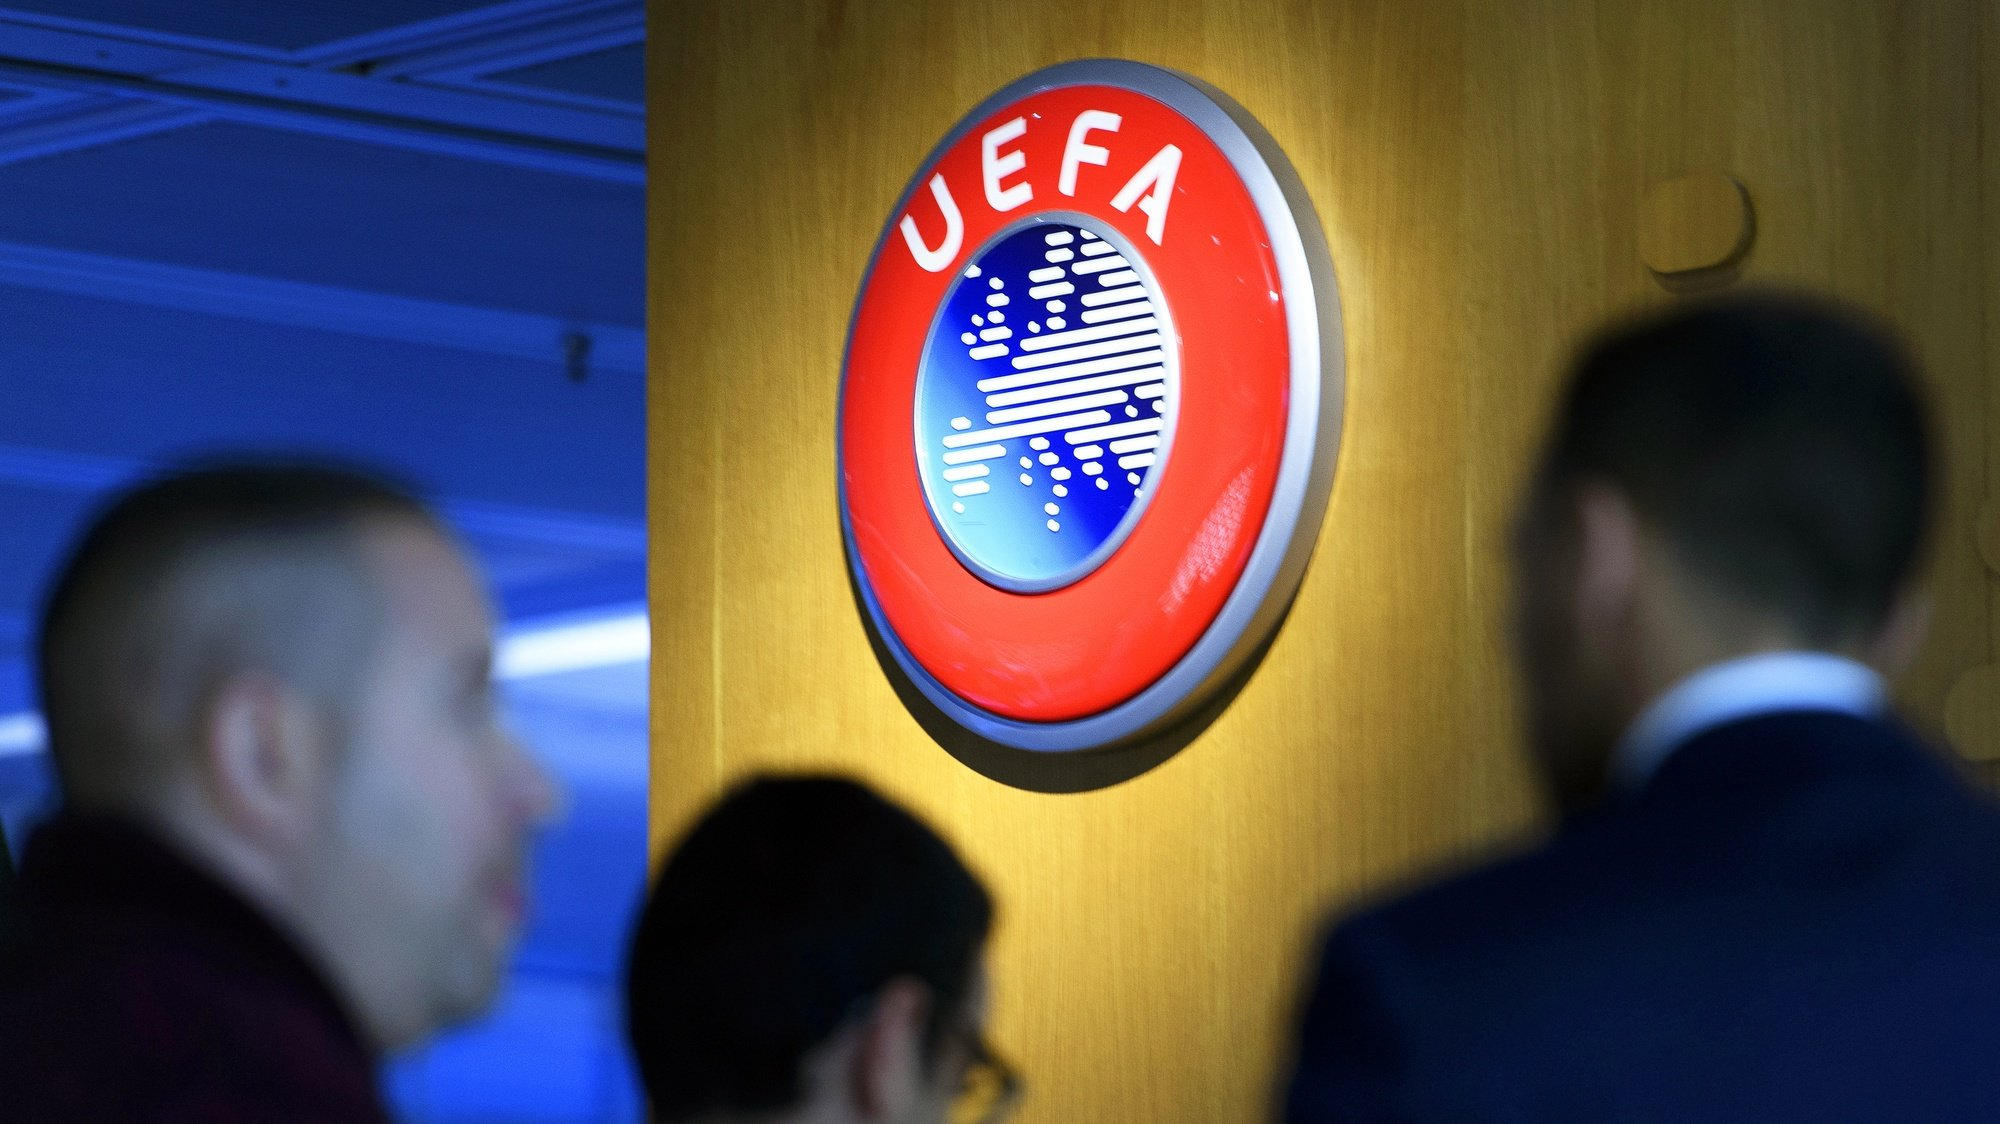 epa08487680 (FILE) - The UEFA logo on display after the meeting of the UEFA Executive Committee at the UEFA headquarters in Nyon, Switzerland, 07 December 2017 (re-issued on 16 June 2020). Lisbon's Estadio da Luz is expected to host the 2020 UEFA Champions League final in a decision by the UEFA executive committee set to be announced on 17 June 2020.  EPA/LAURENT GILLIERON *** Local Caption *** 55993944